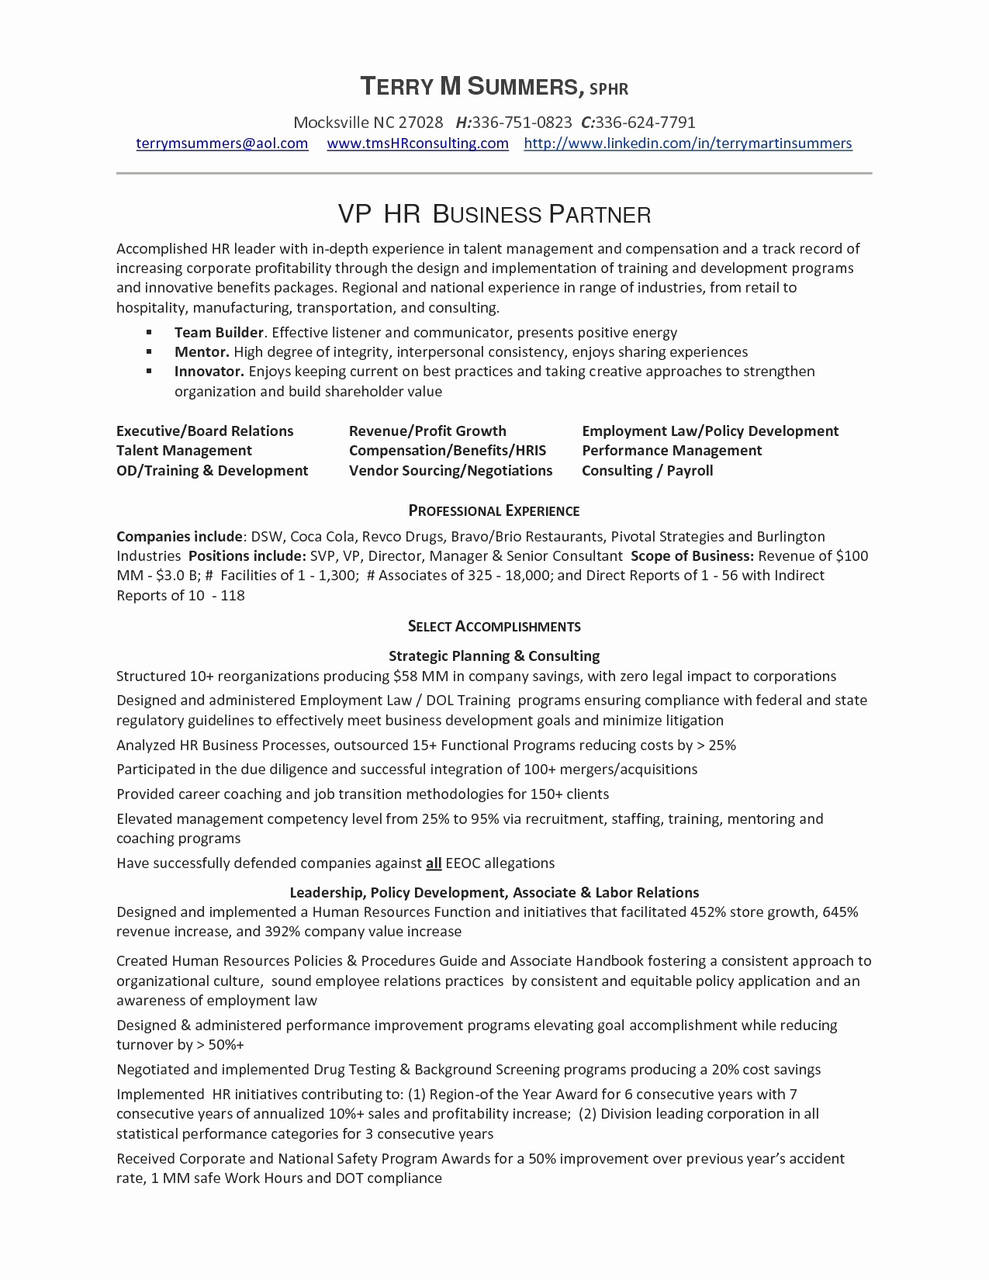 Resume and Linkedin Profile Writing - Resume Writing Basics